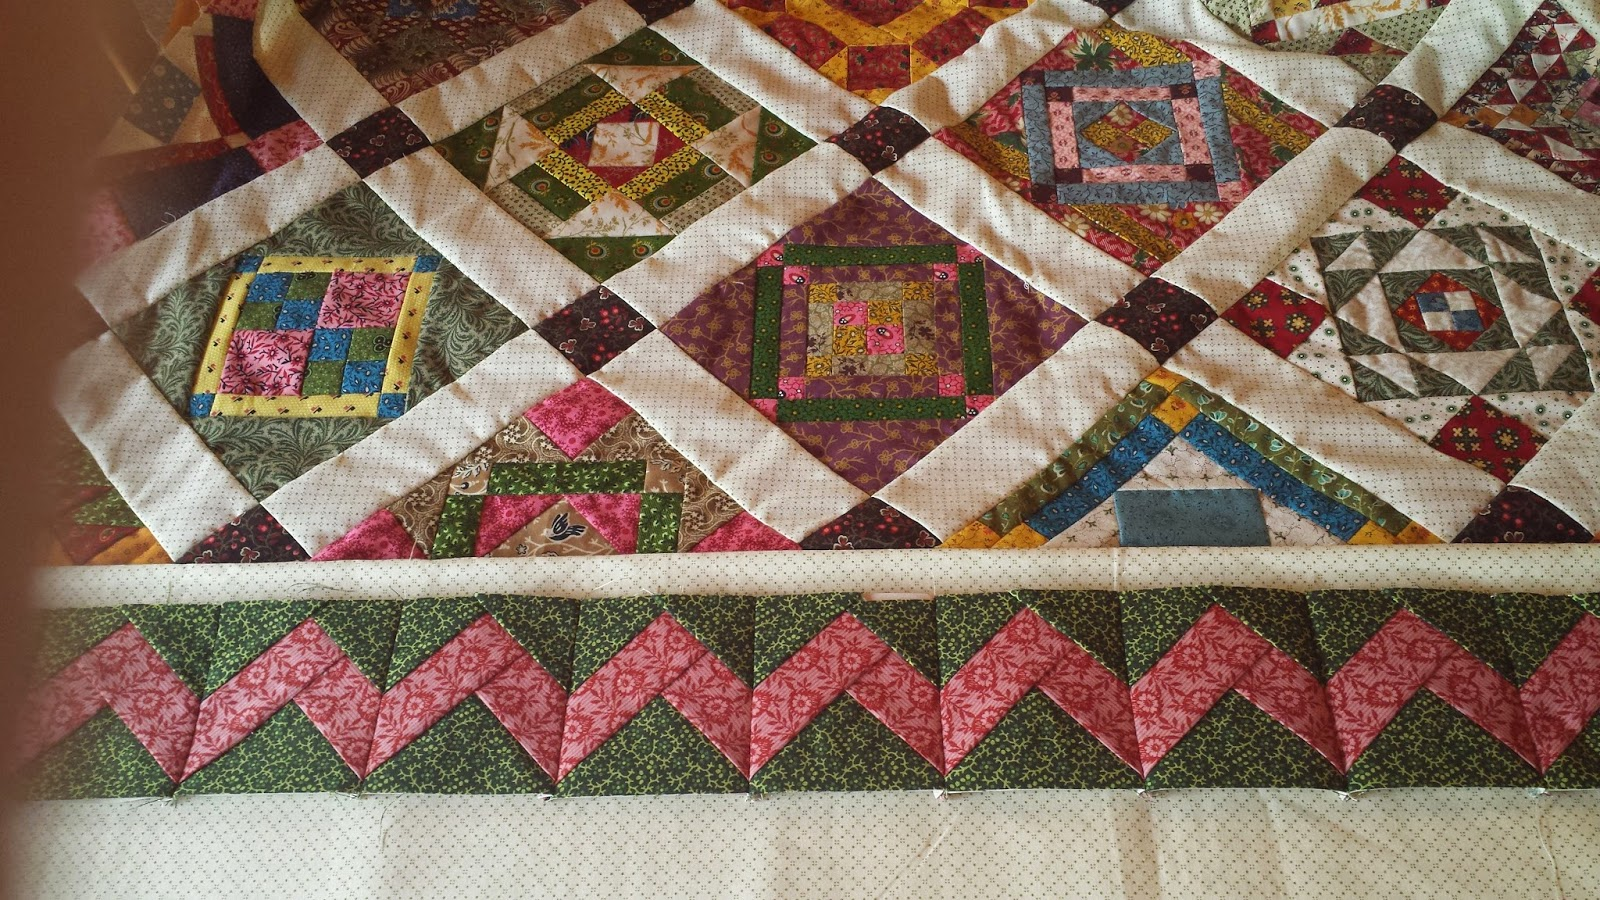 susannasquilts: Border for N.I.